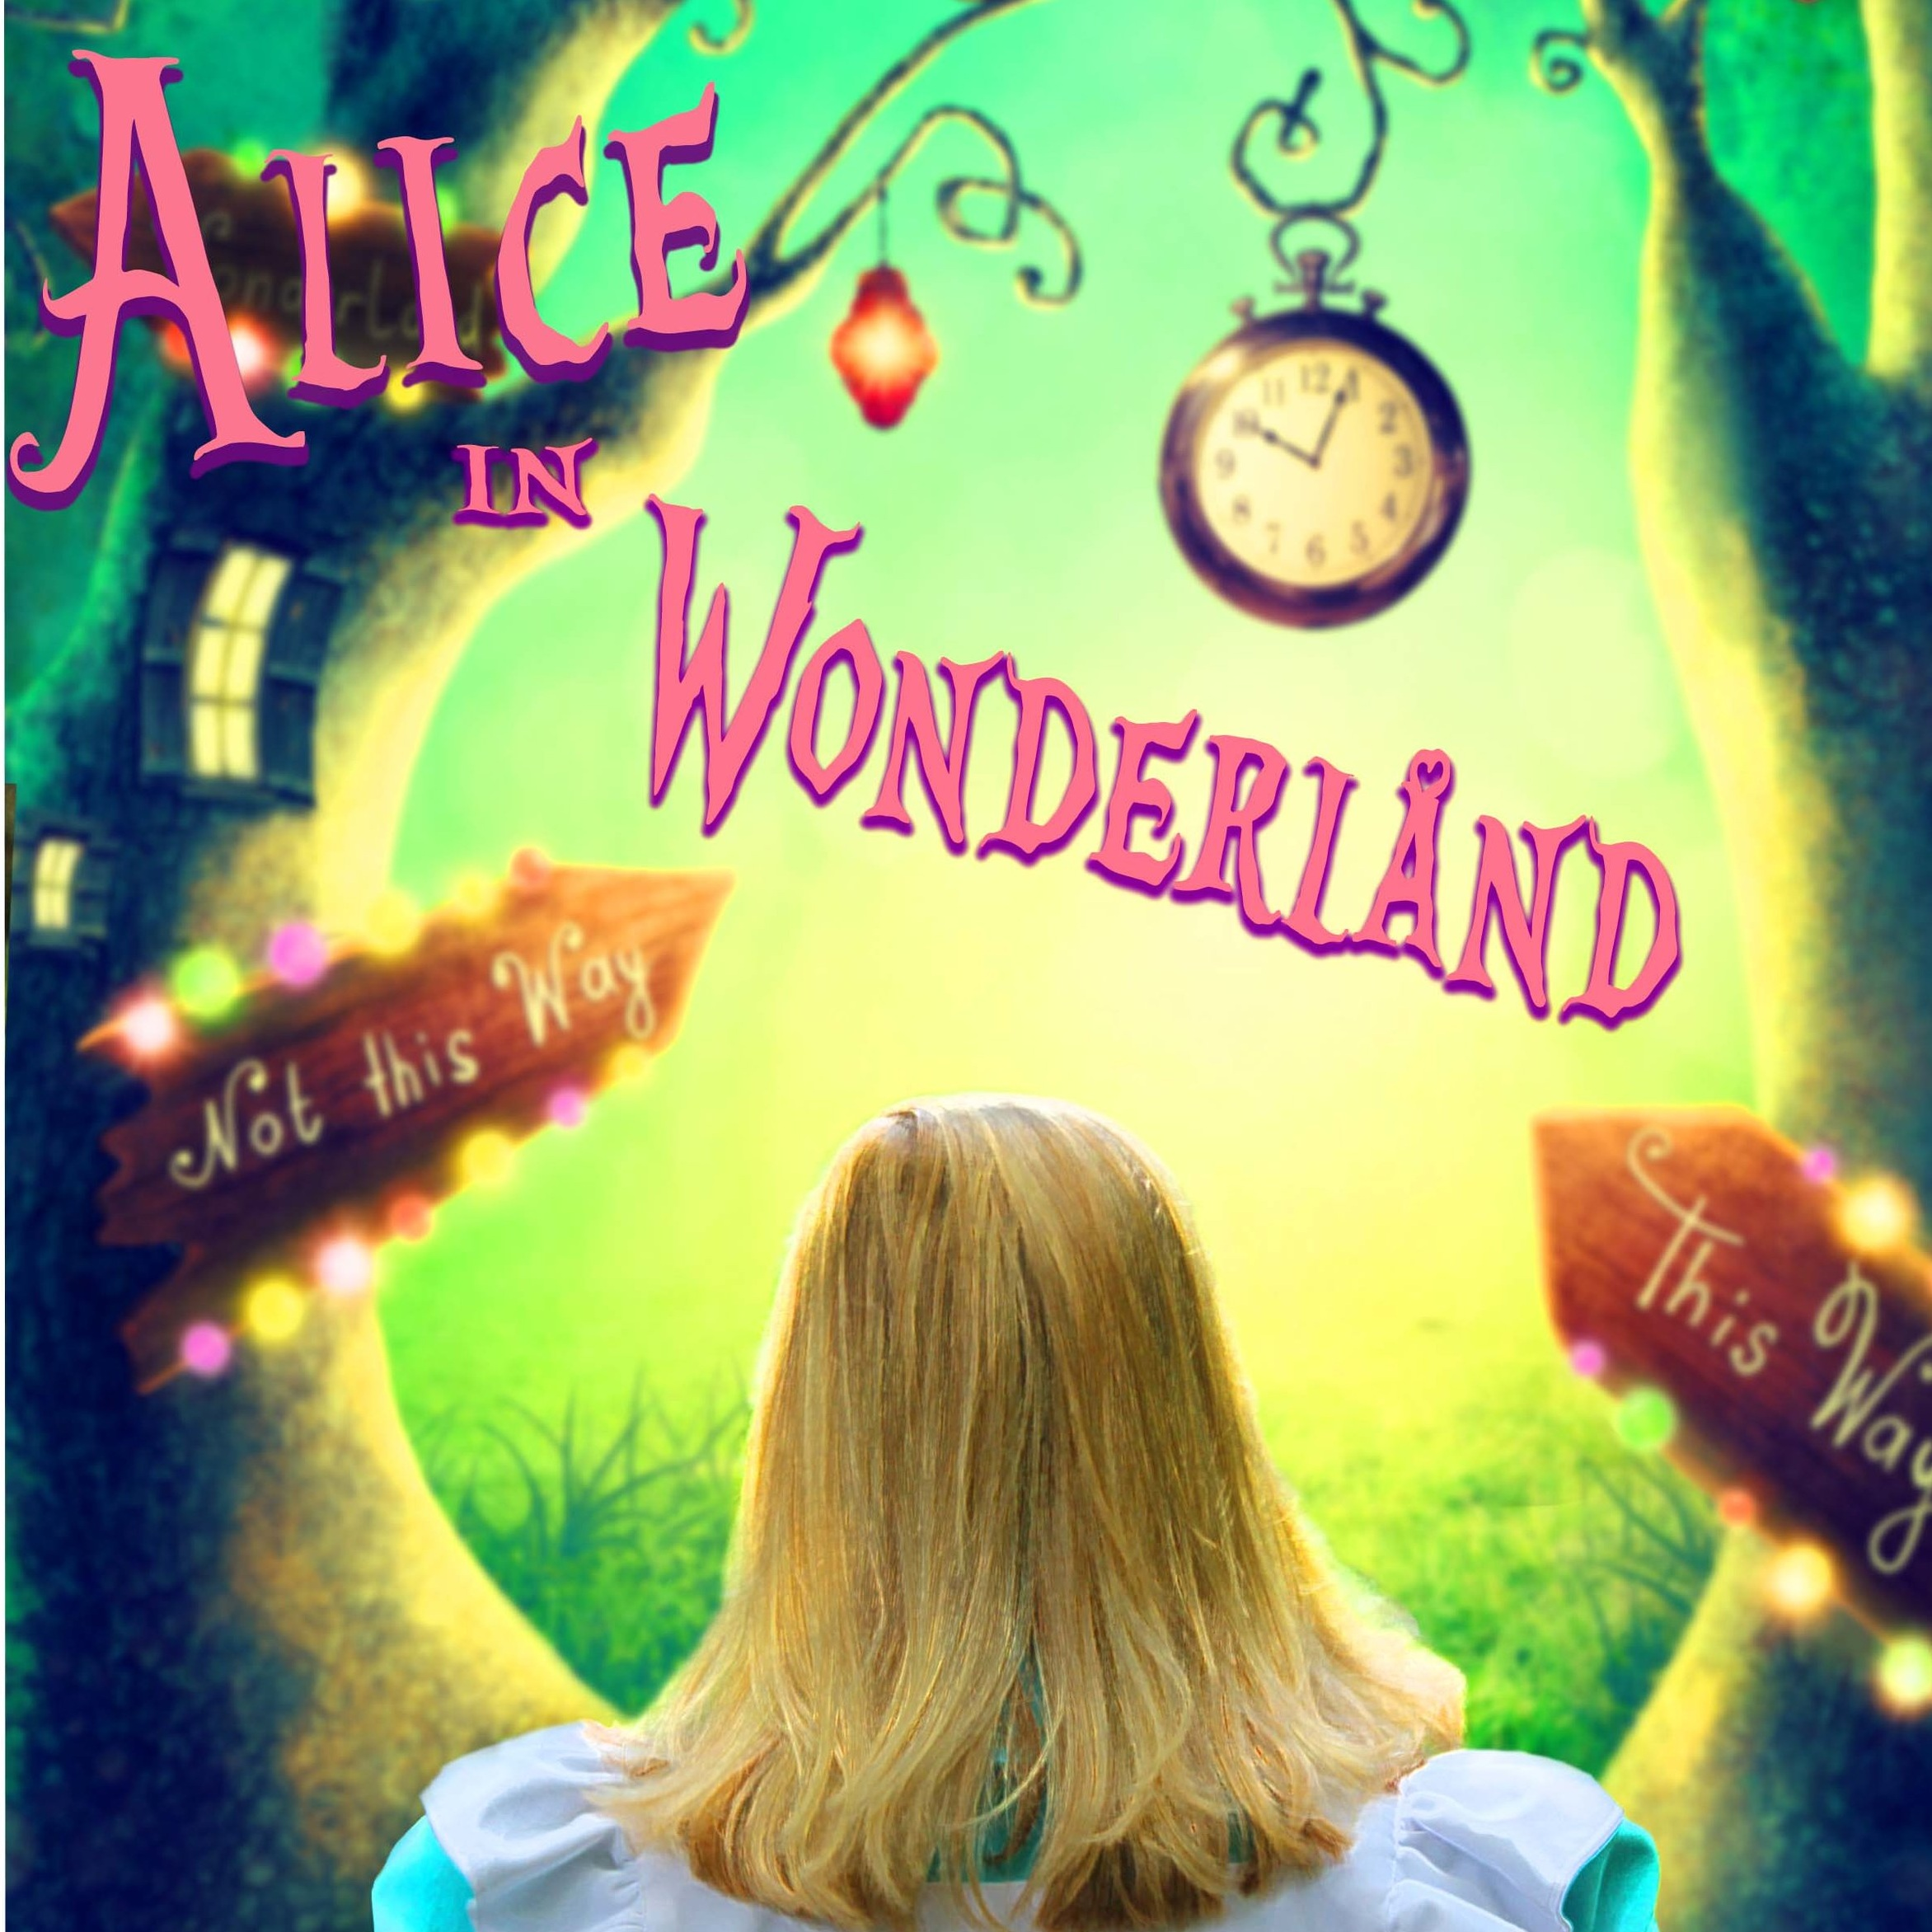 Alice Poster Summer 2020 small file.jpg